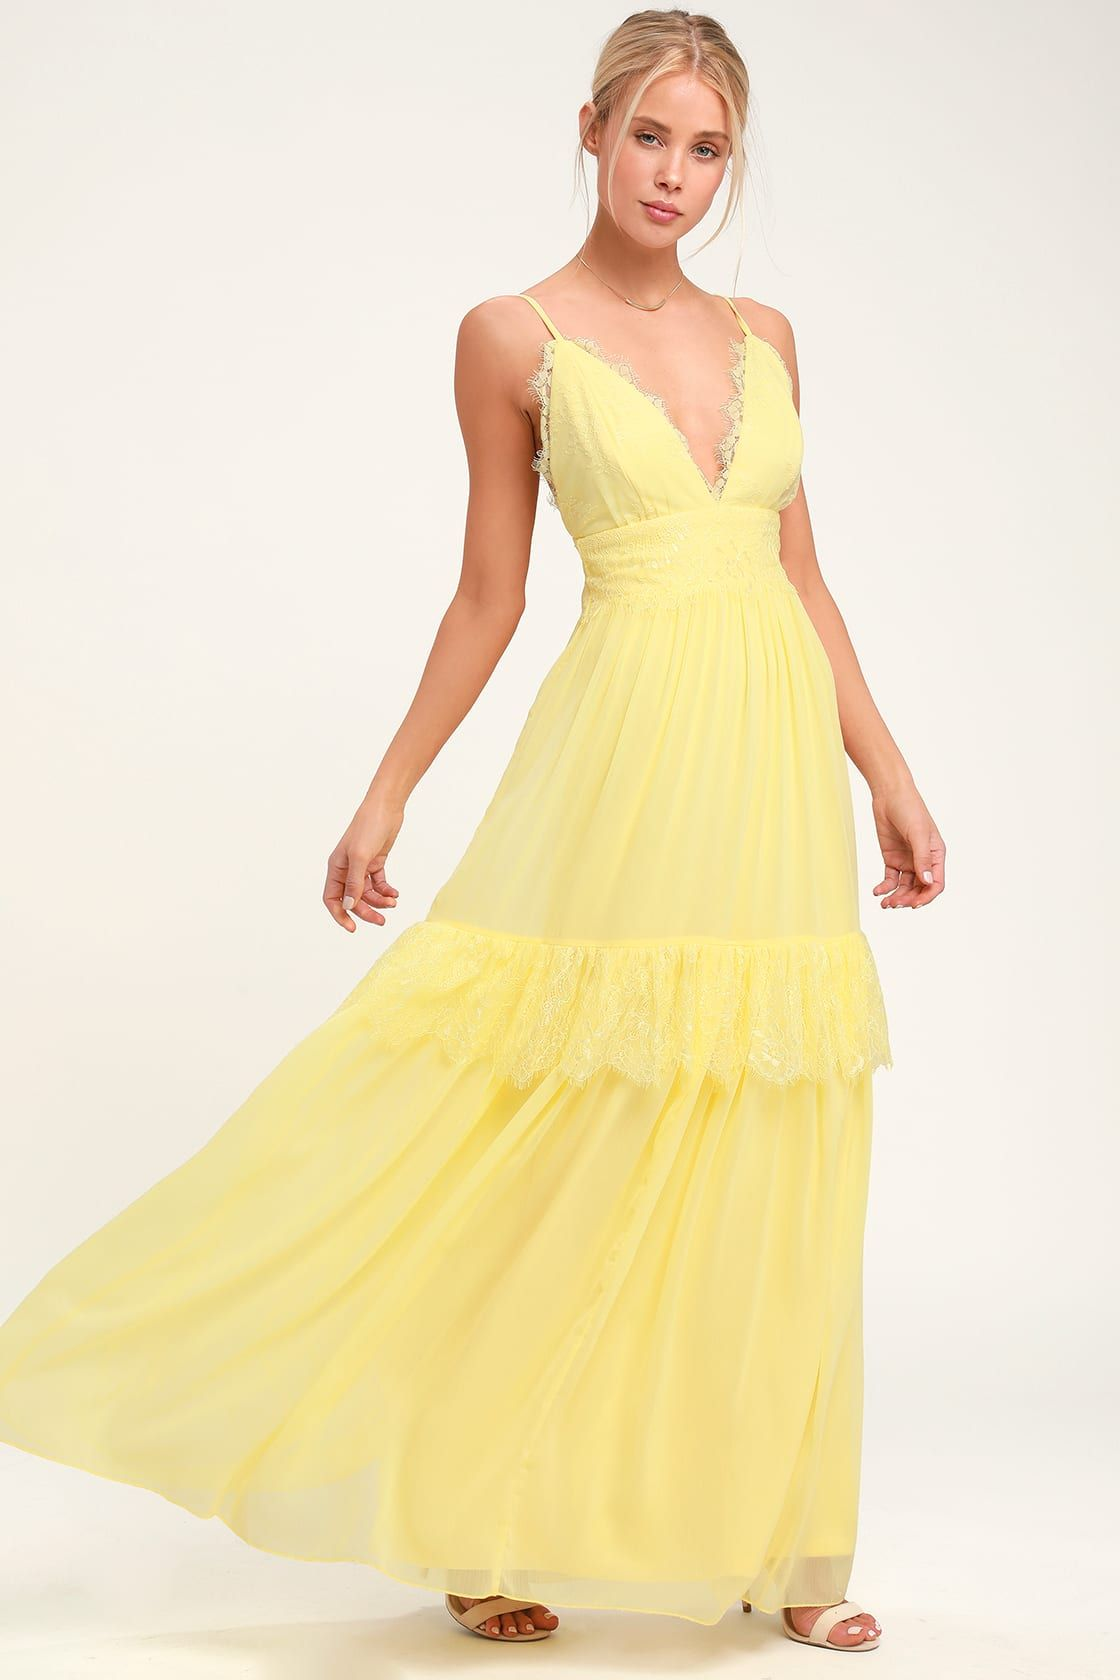 abd661abbe5d98 Lulus | Dream About Me Pale Yellow Lace Maxi Dress | Size Large ...